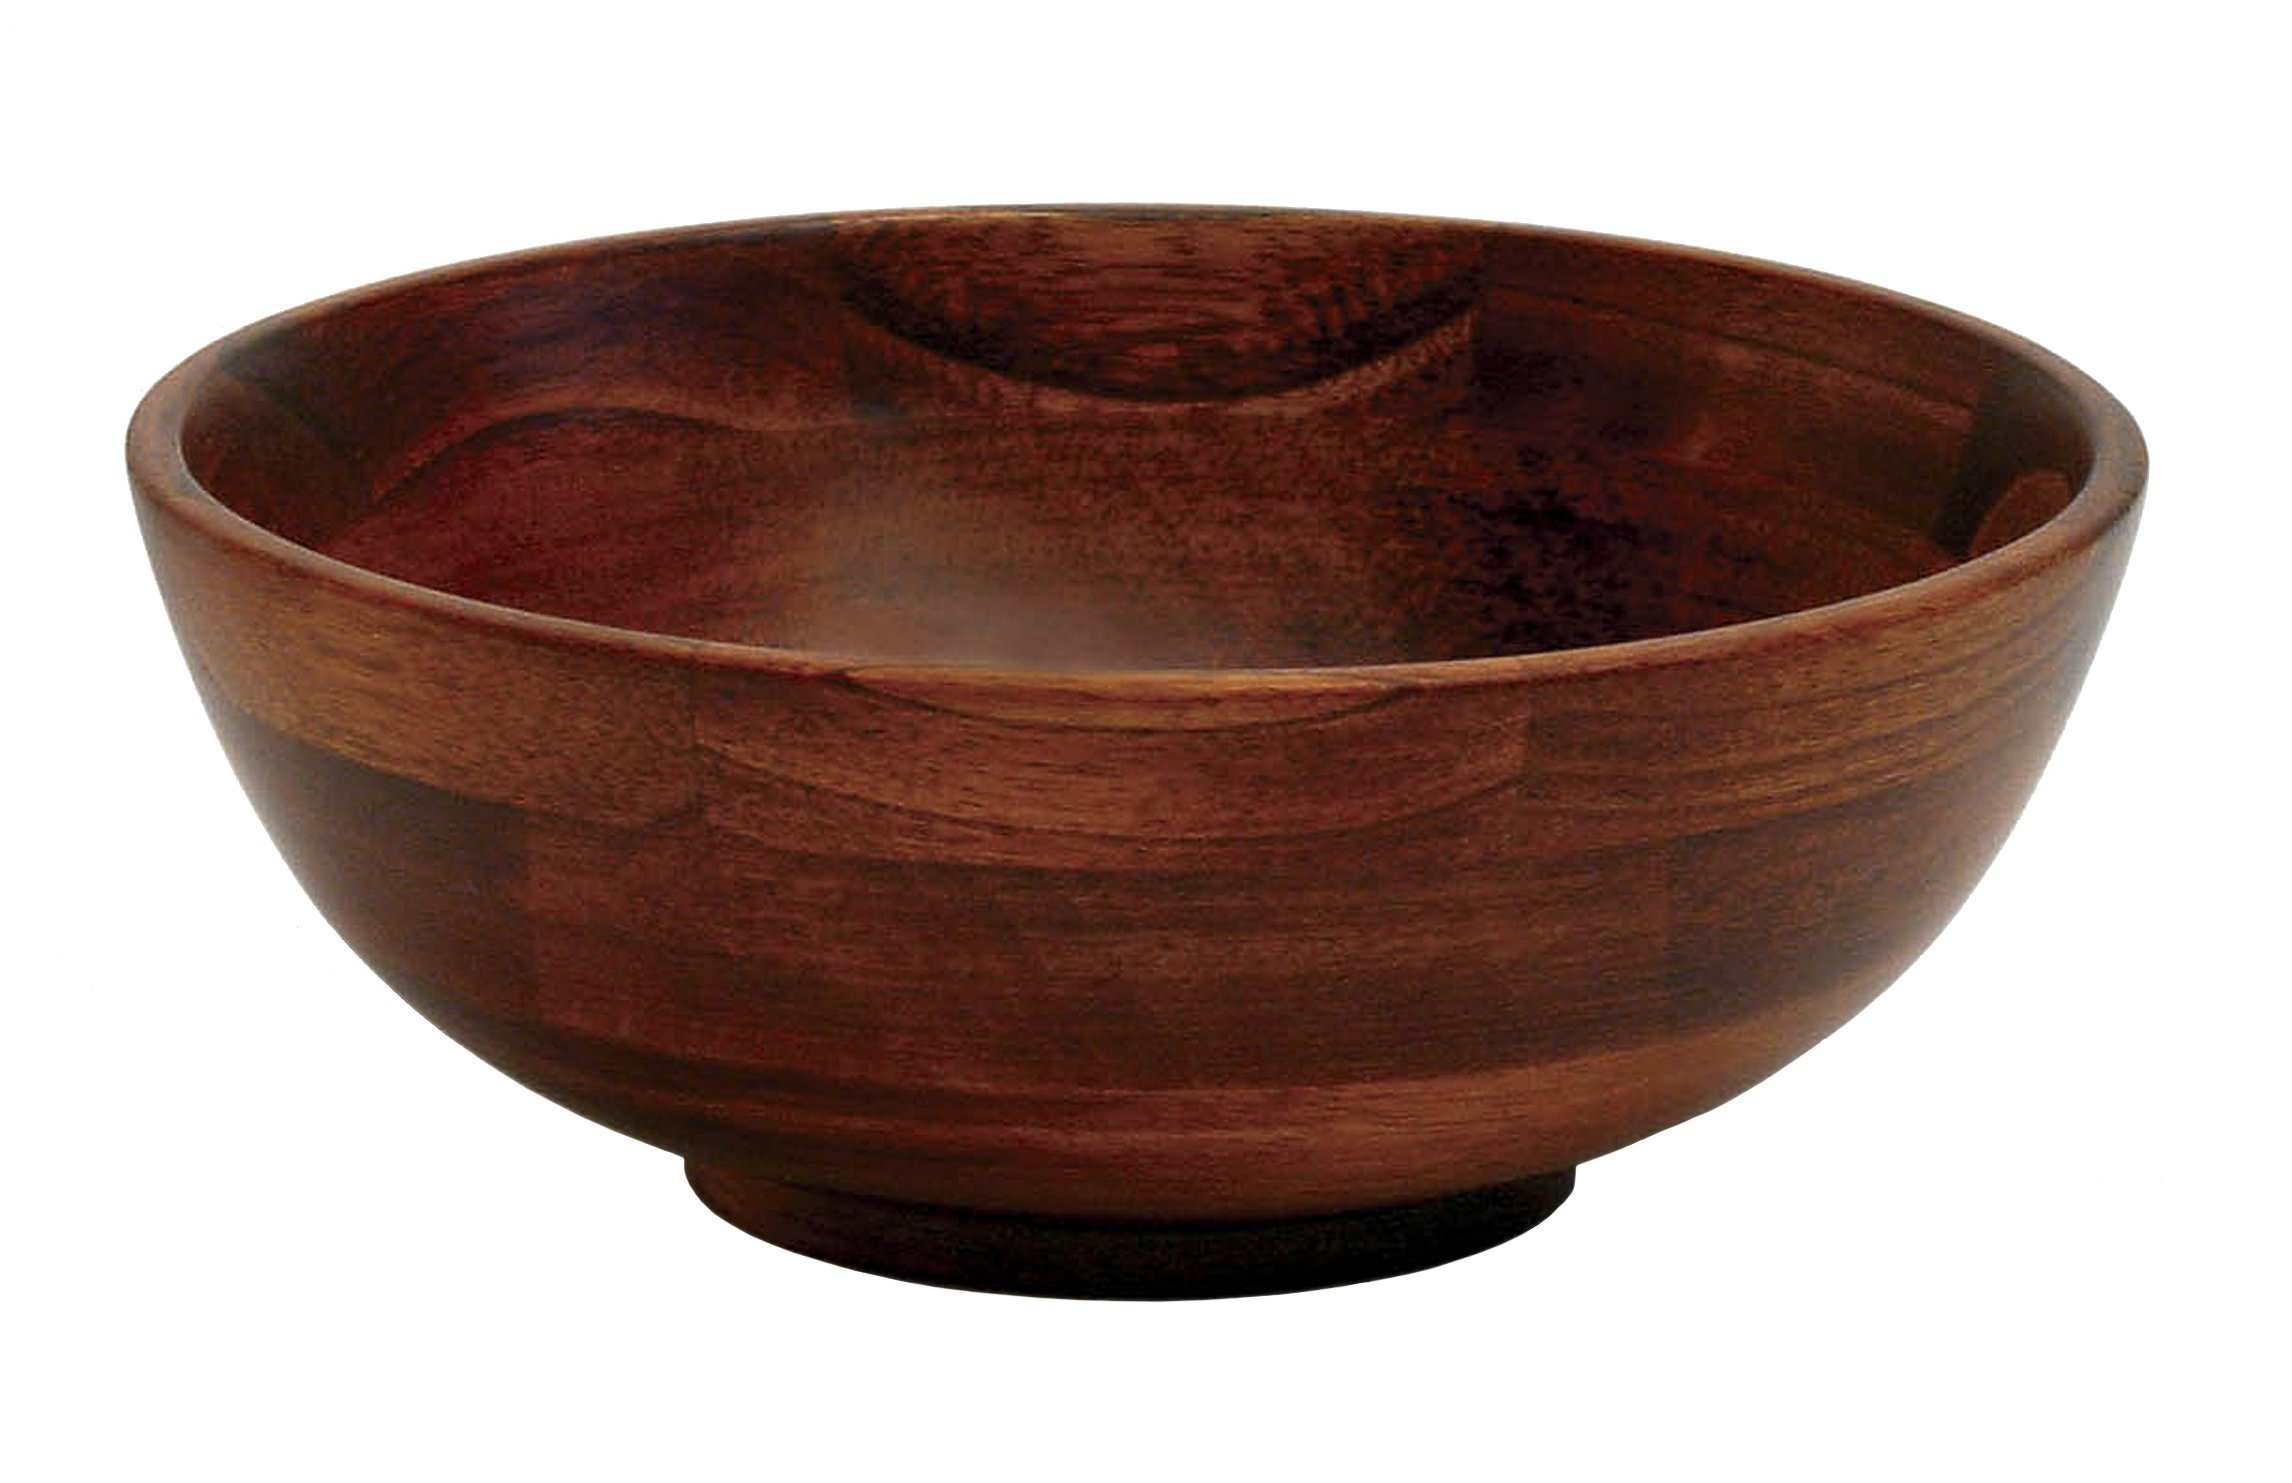 Lipper International 273 Cherry Finished Footed Serving Bowl for Fruits or Salads, Small, 7'' Diameter x 2.75'' Height, Single Bowl